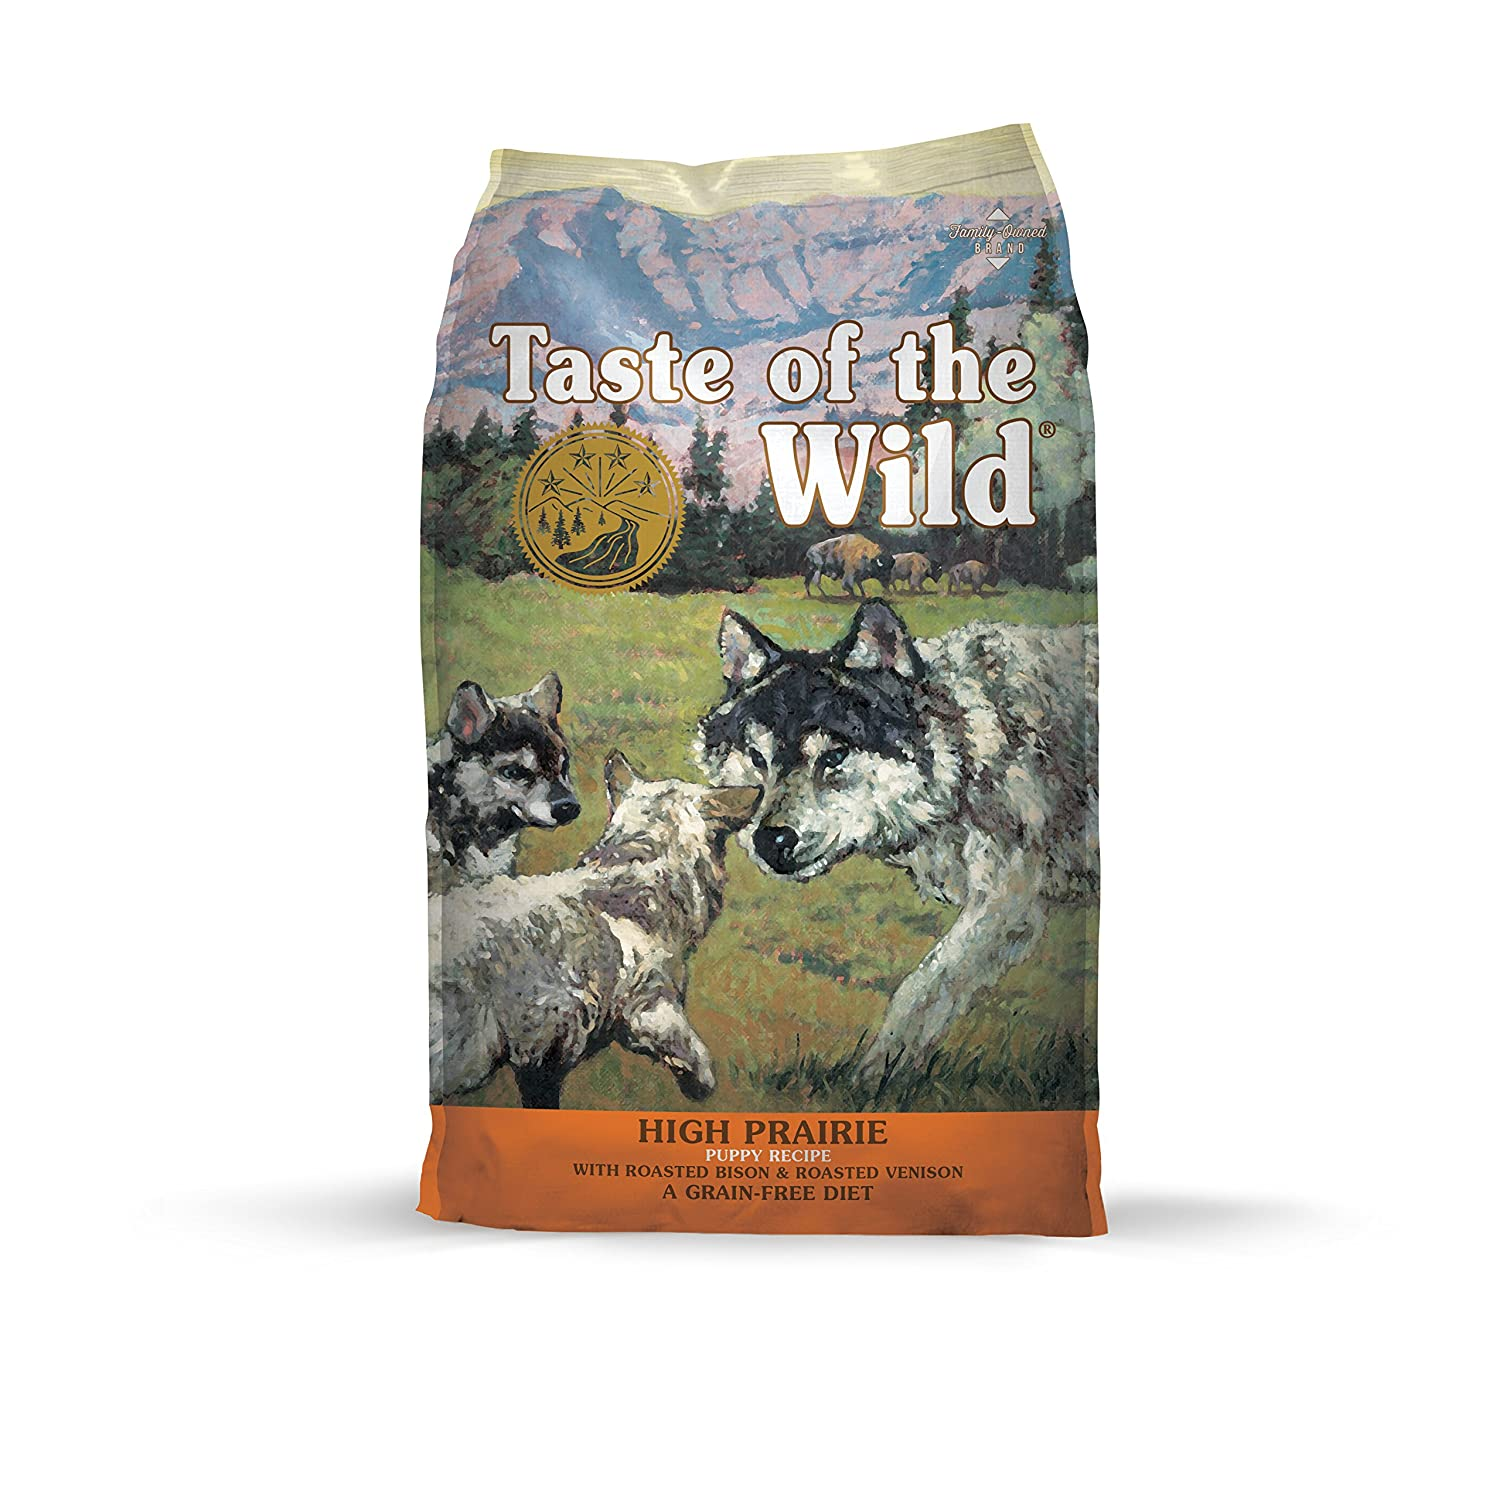 7. Taste of the Wild High Prairie Puppy Formula Grain-Free Dry Dog Food